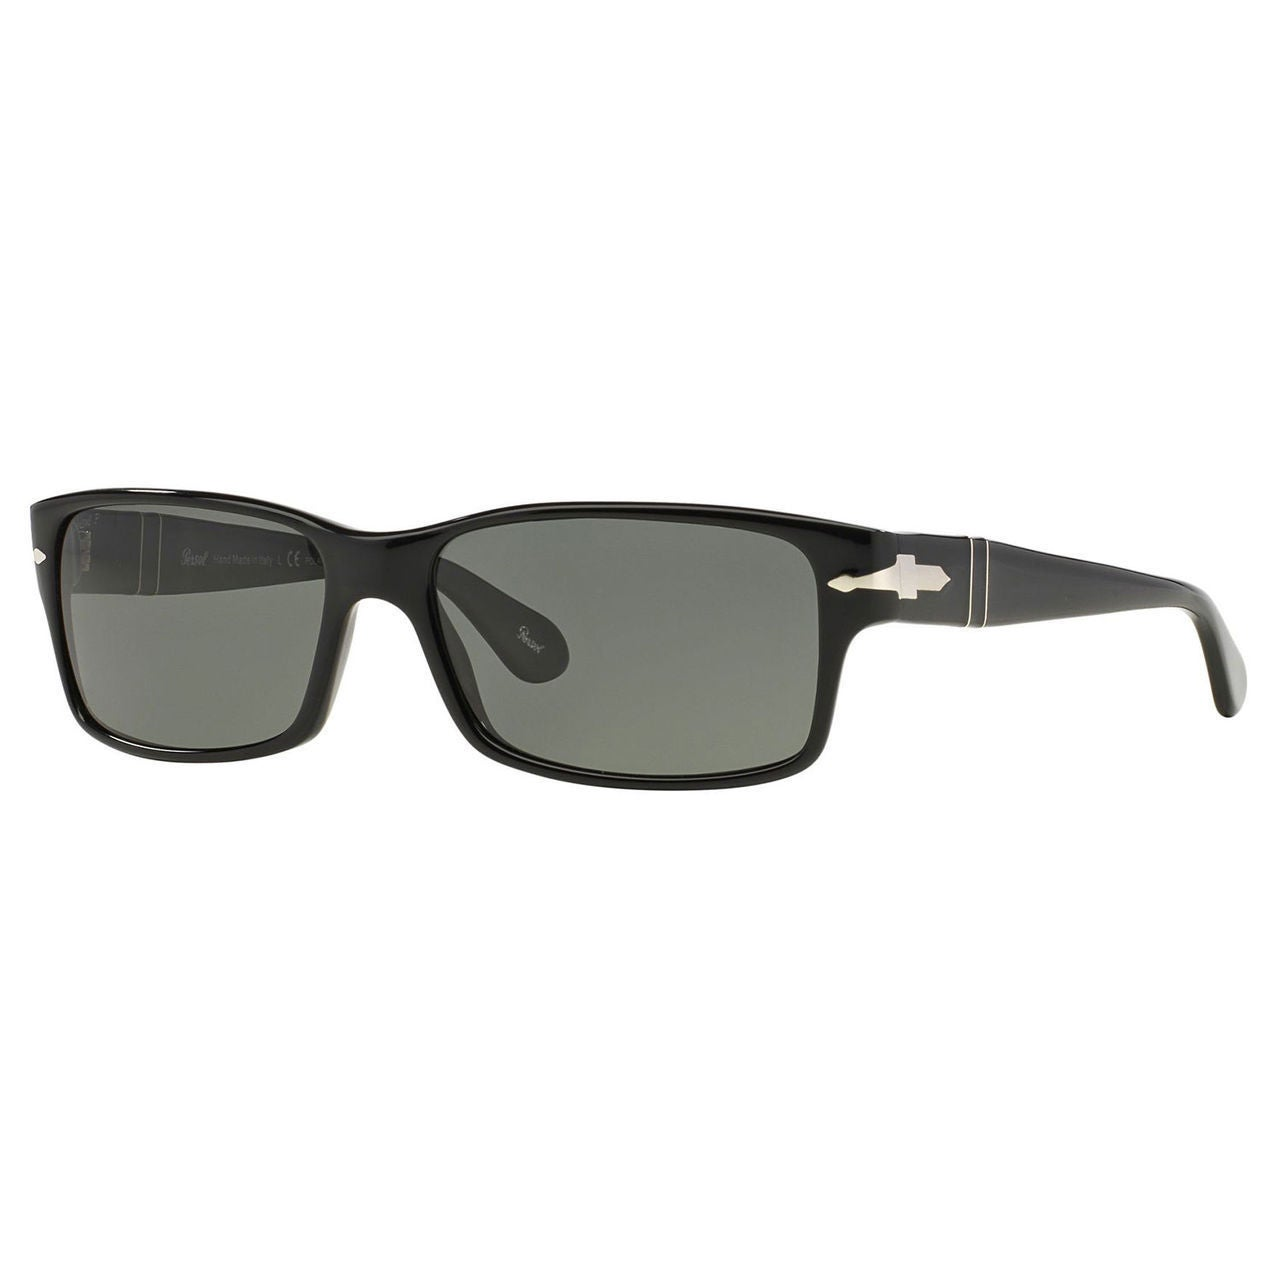 ad842a9a61f7 Shop Persol Men's PO2803S Plastic Rectangle Polarized Sunglasses - Black -  Large - Ships To Canada - Overstock - 10456797